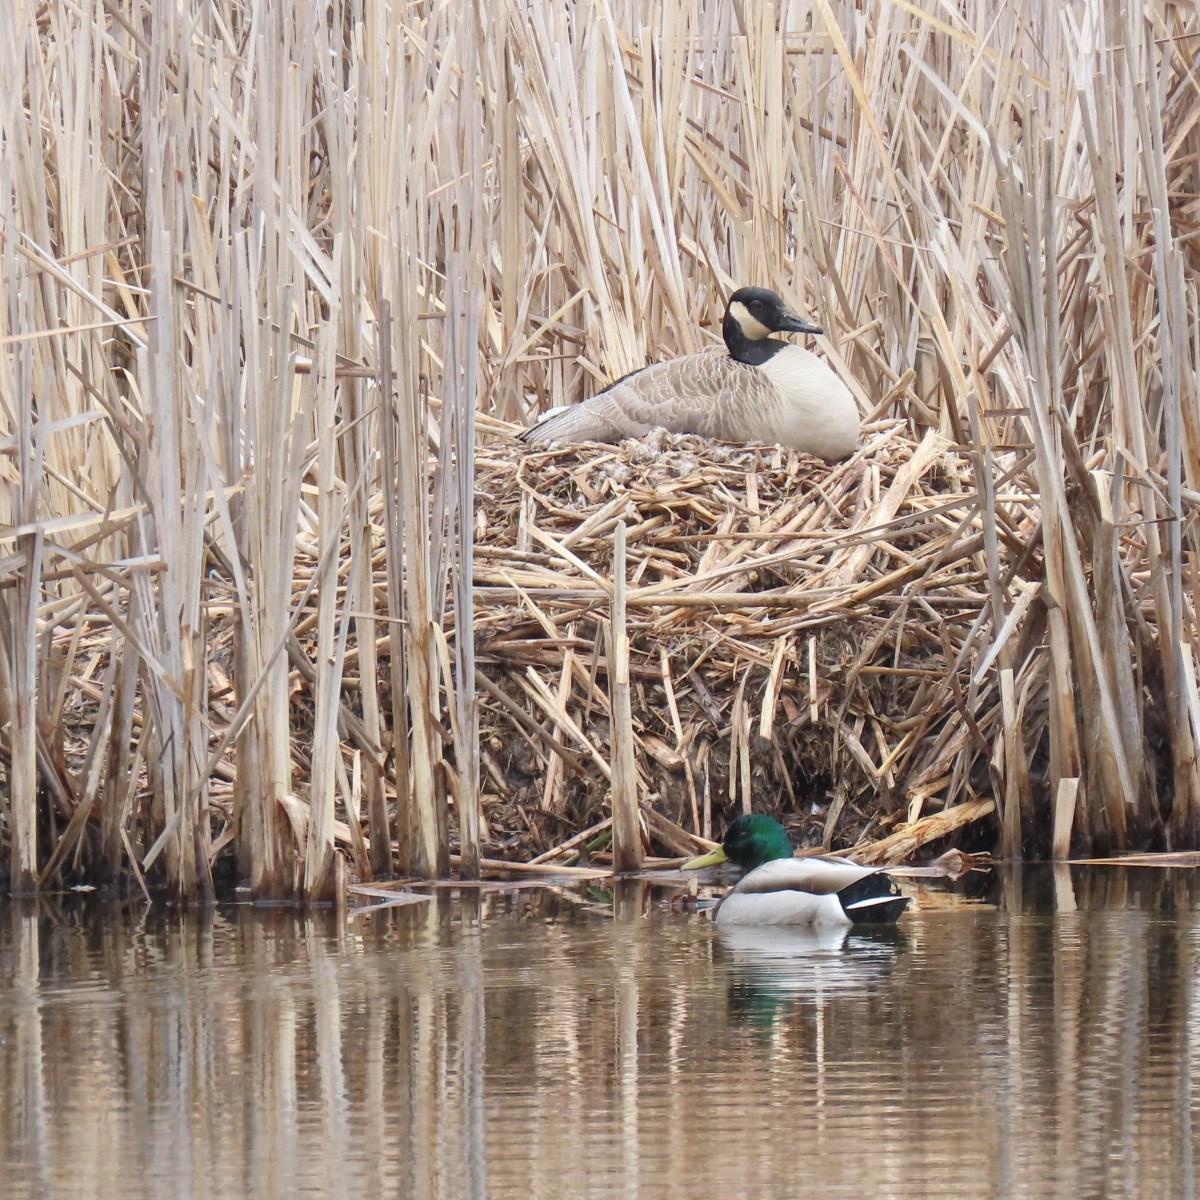 A goose sits on its nest while a mallard duck floats in the water nearby